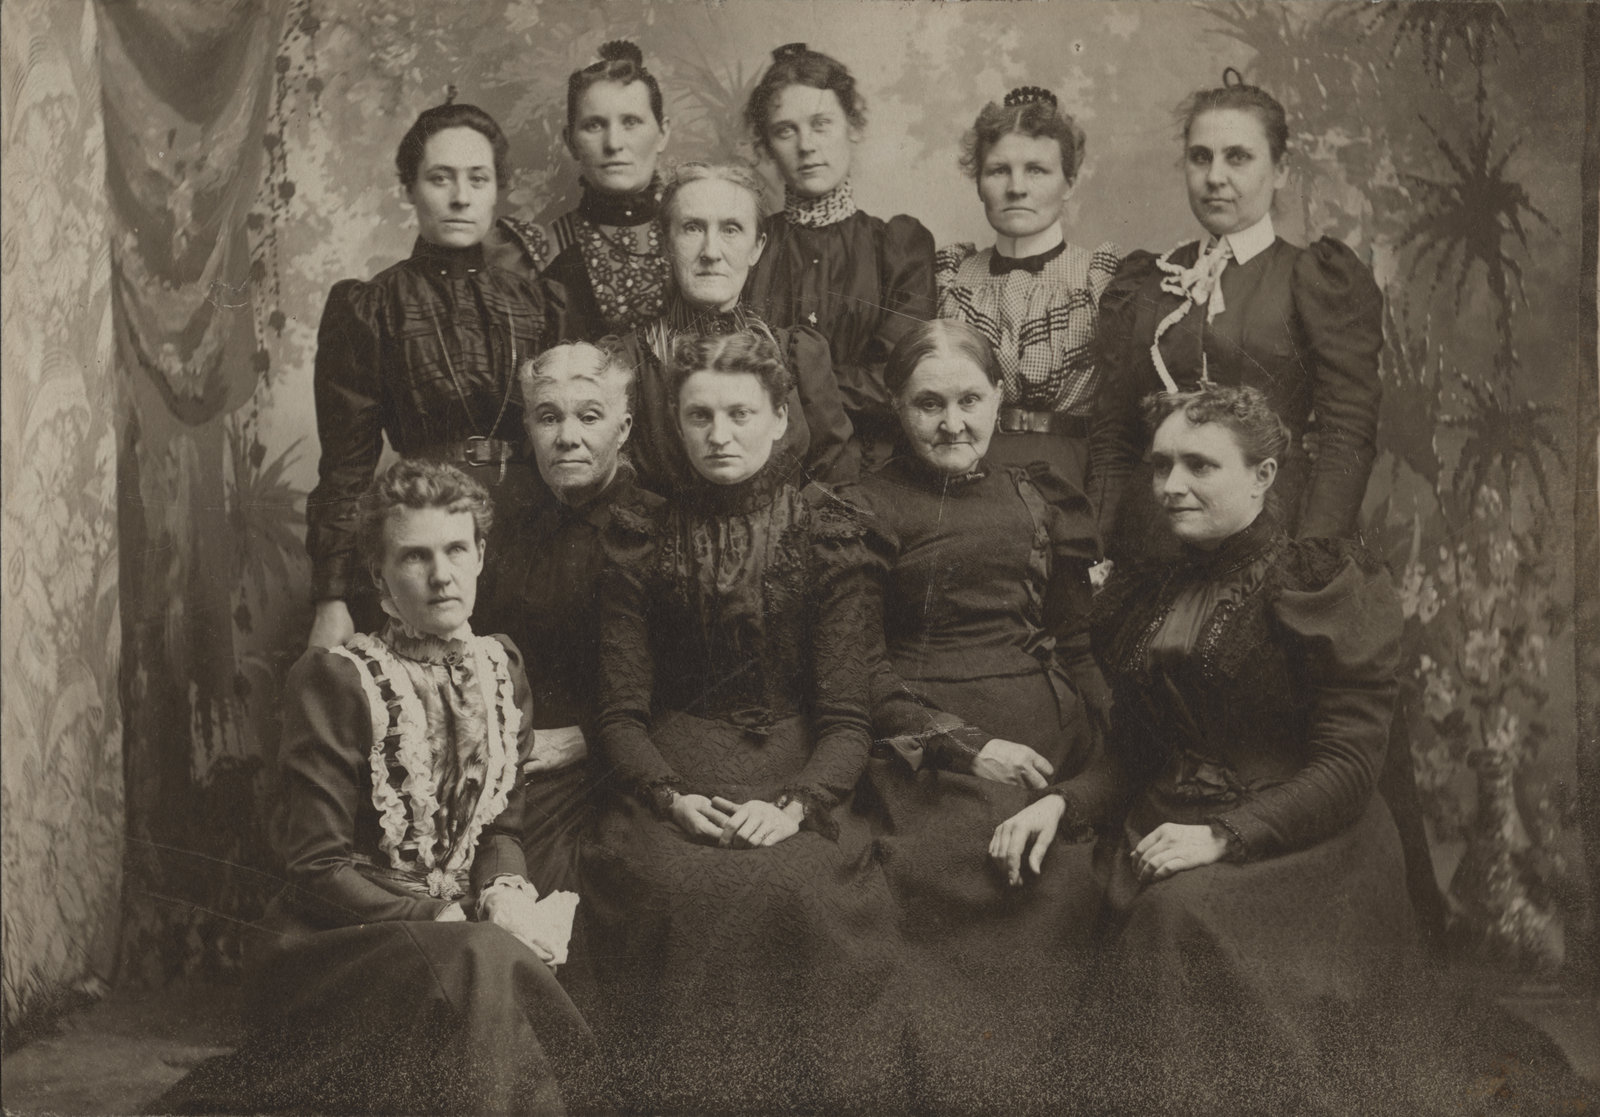 These women may be members of the Women's Missionary Society of the Evangelical Lutheran Church, around the turn of the century. Courtesy the Wilfrid Laurier University Library.